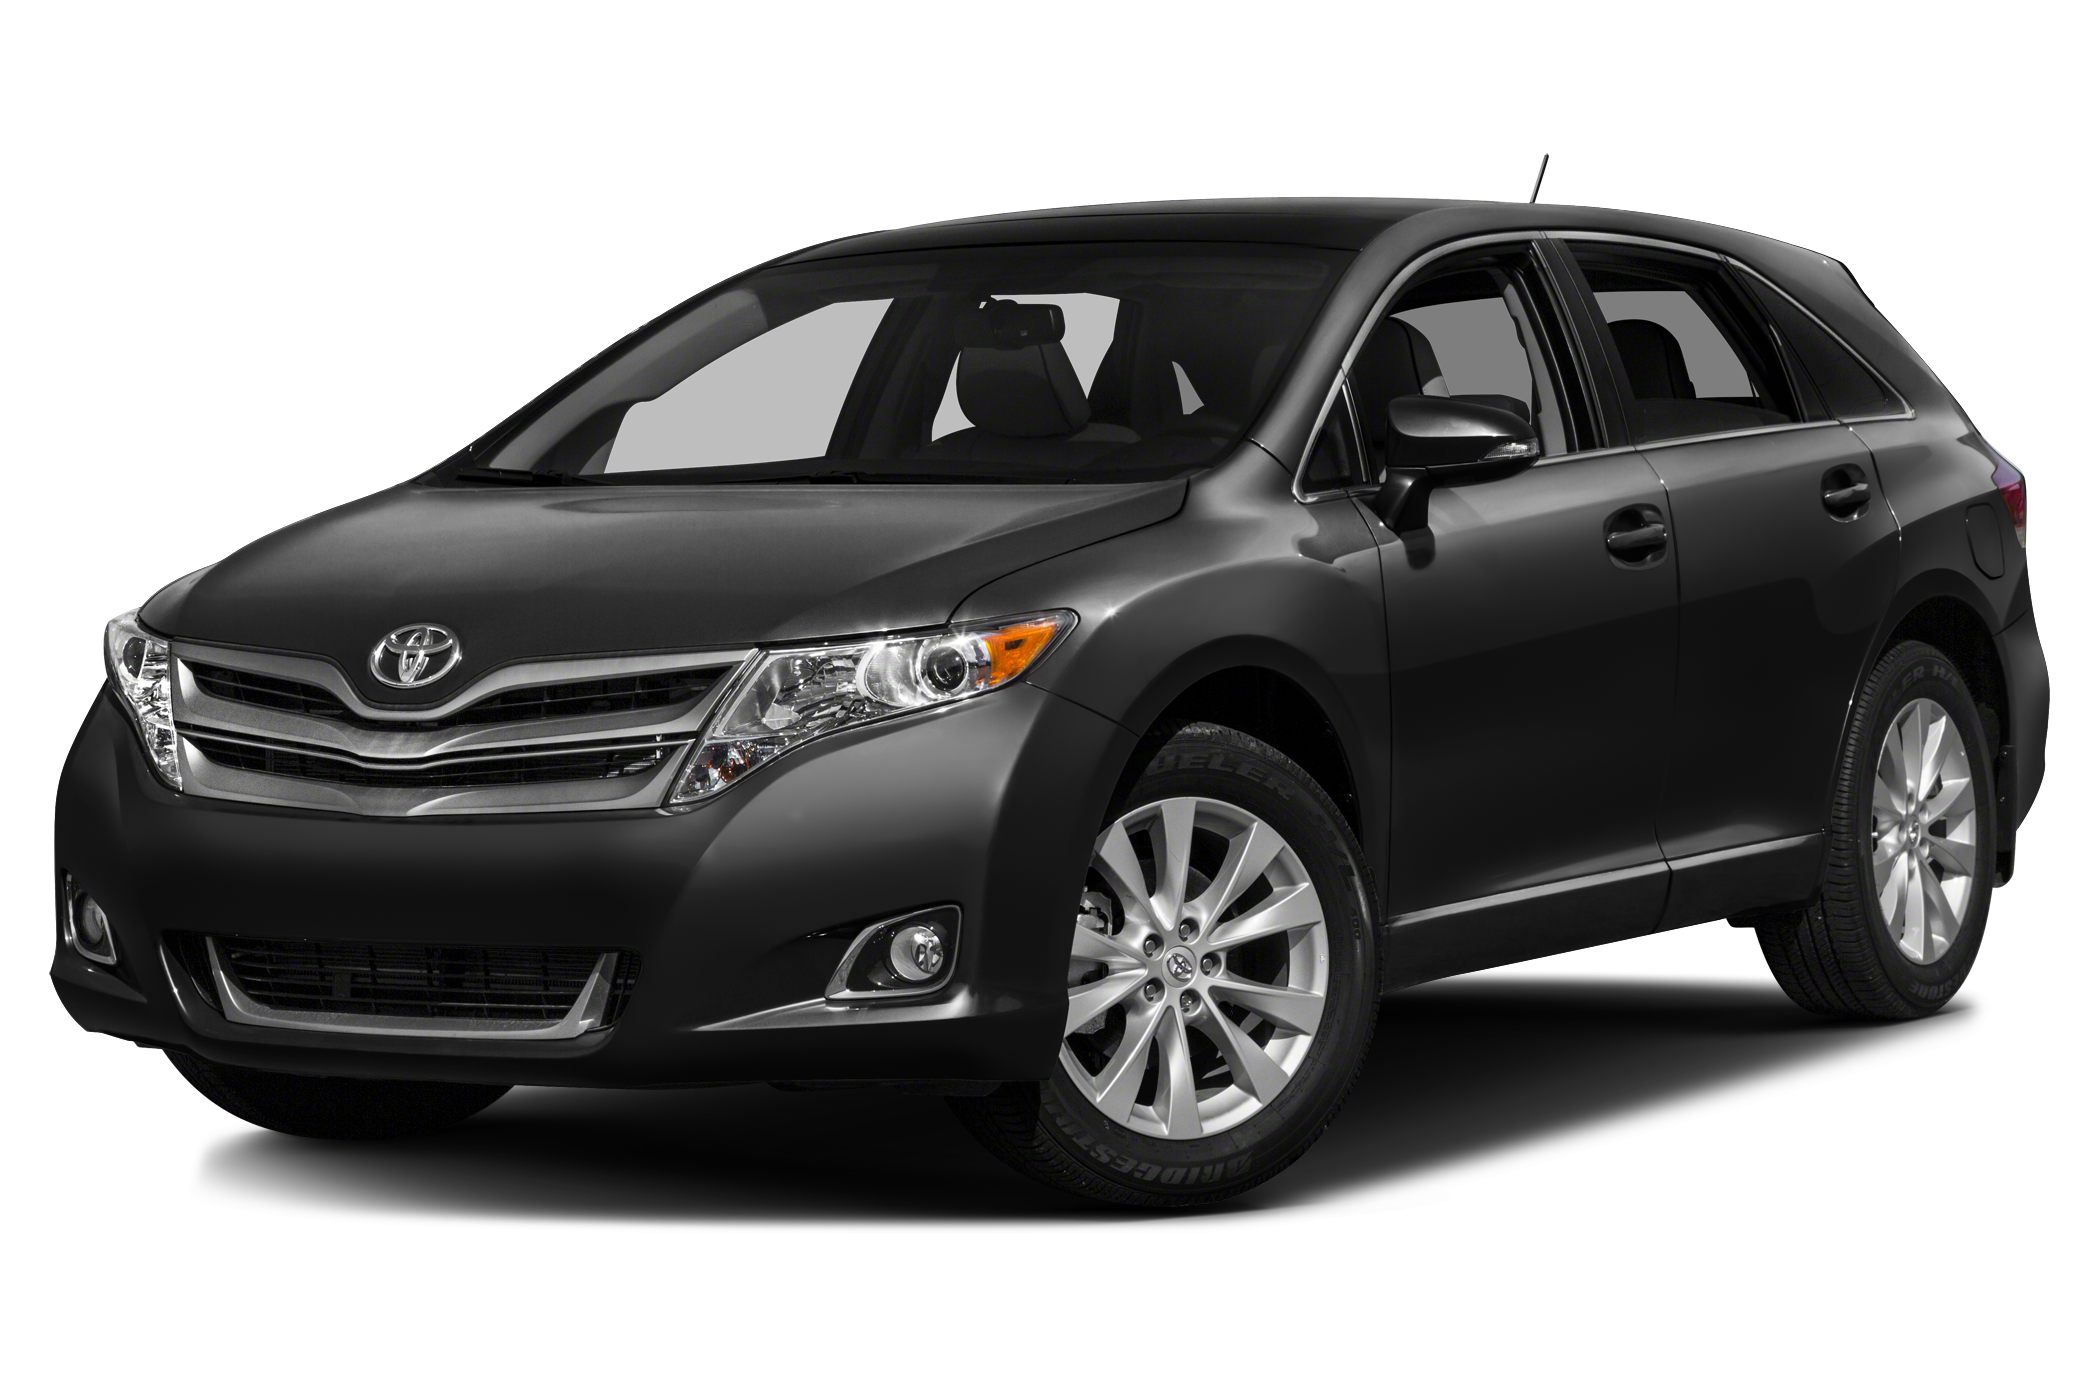 2014 Toyota Venza LE Win a deal on this 2014 Toyota Venza LE before its too late Spacious but ag